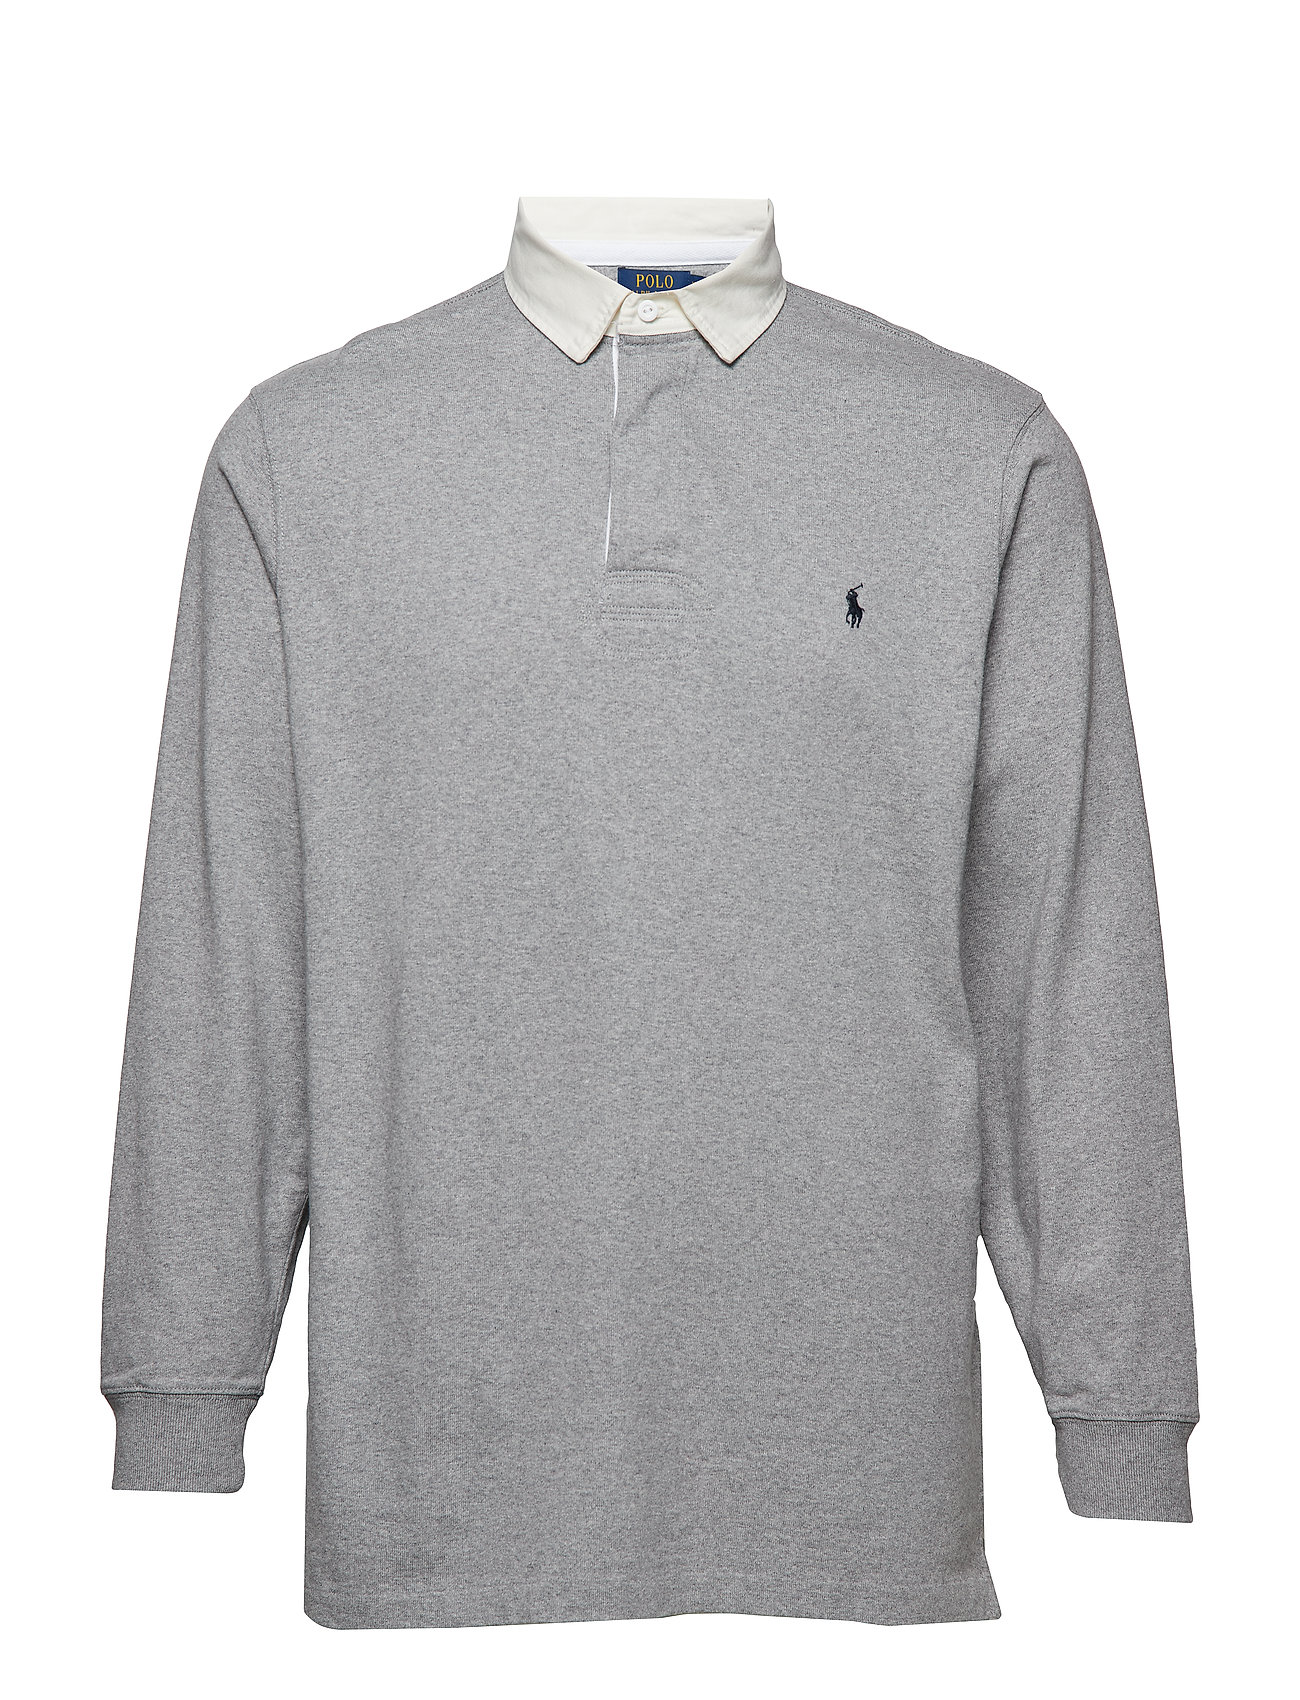 Polo Ralph Lauren Big & Tall The Iconic Rugby Shirt - LEAGUE HEATHER